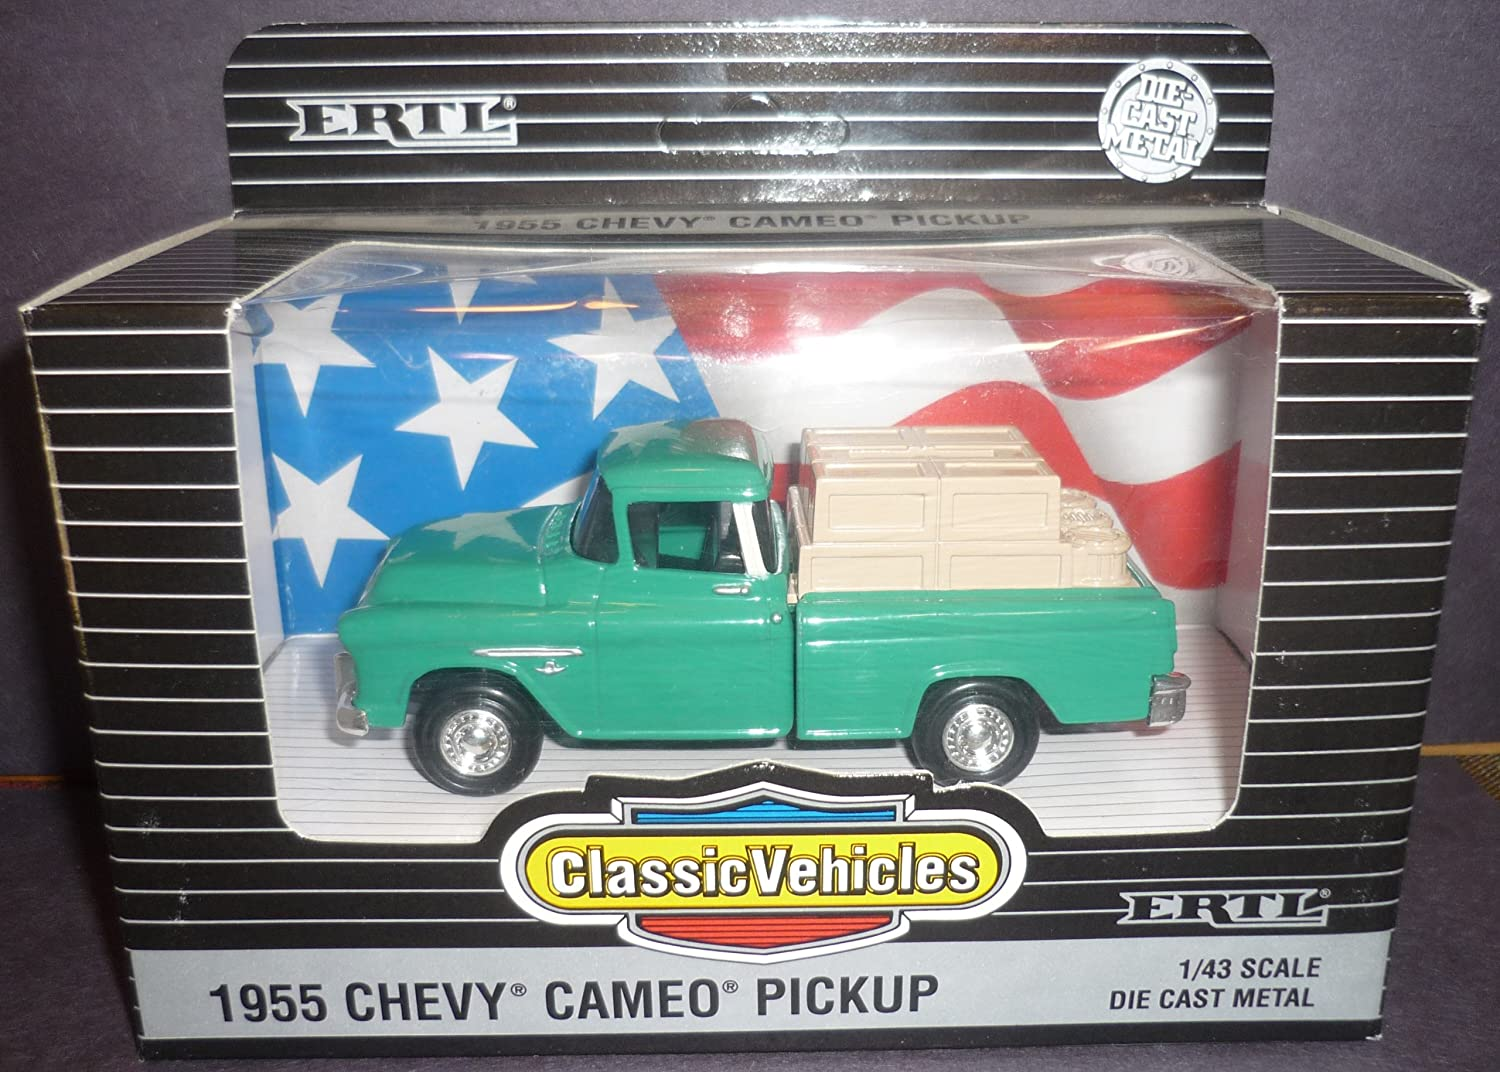 2154 Ertl Classic Vehicles 1955 Chevy Cameo Pickup 1 43 Truck Scale Diecast By Toys Games